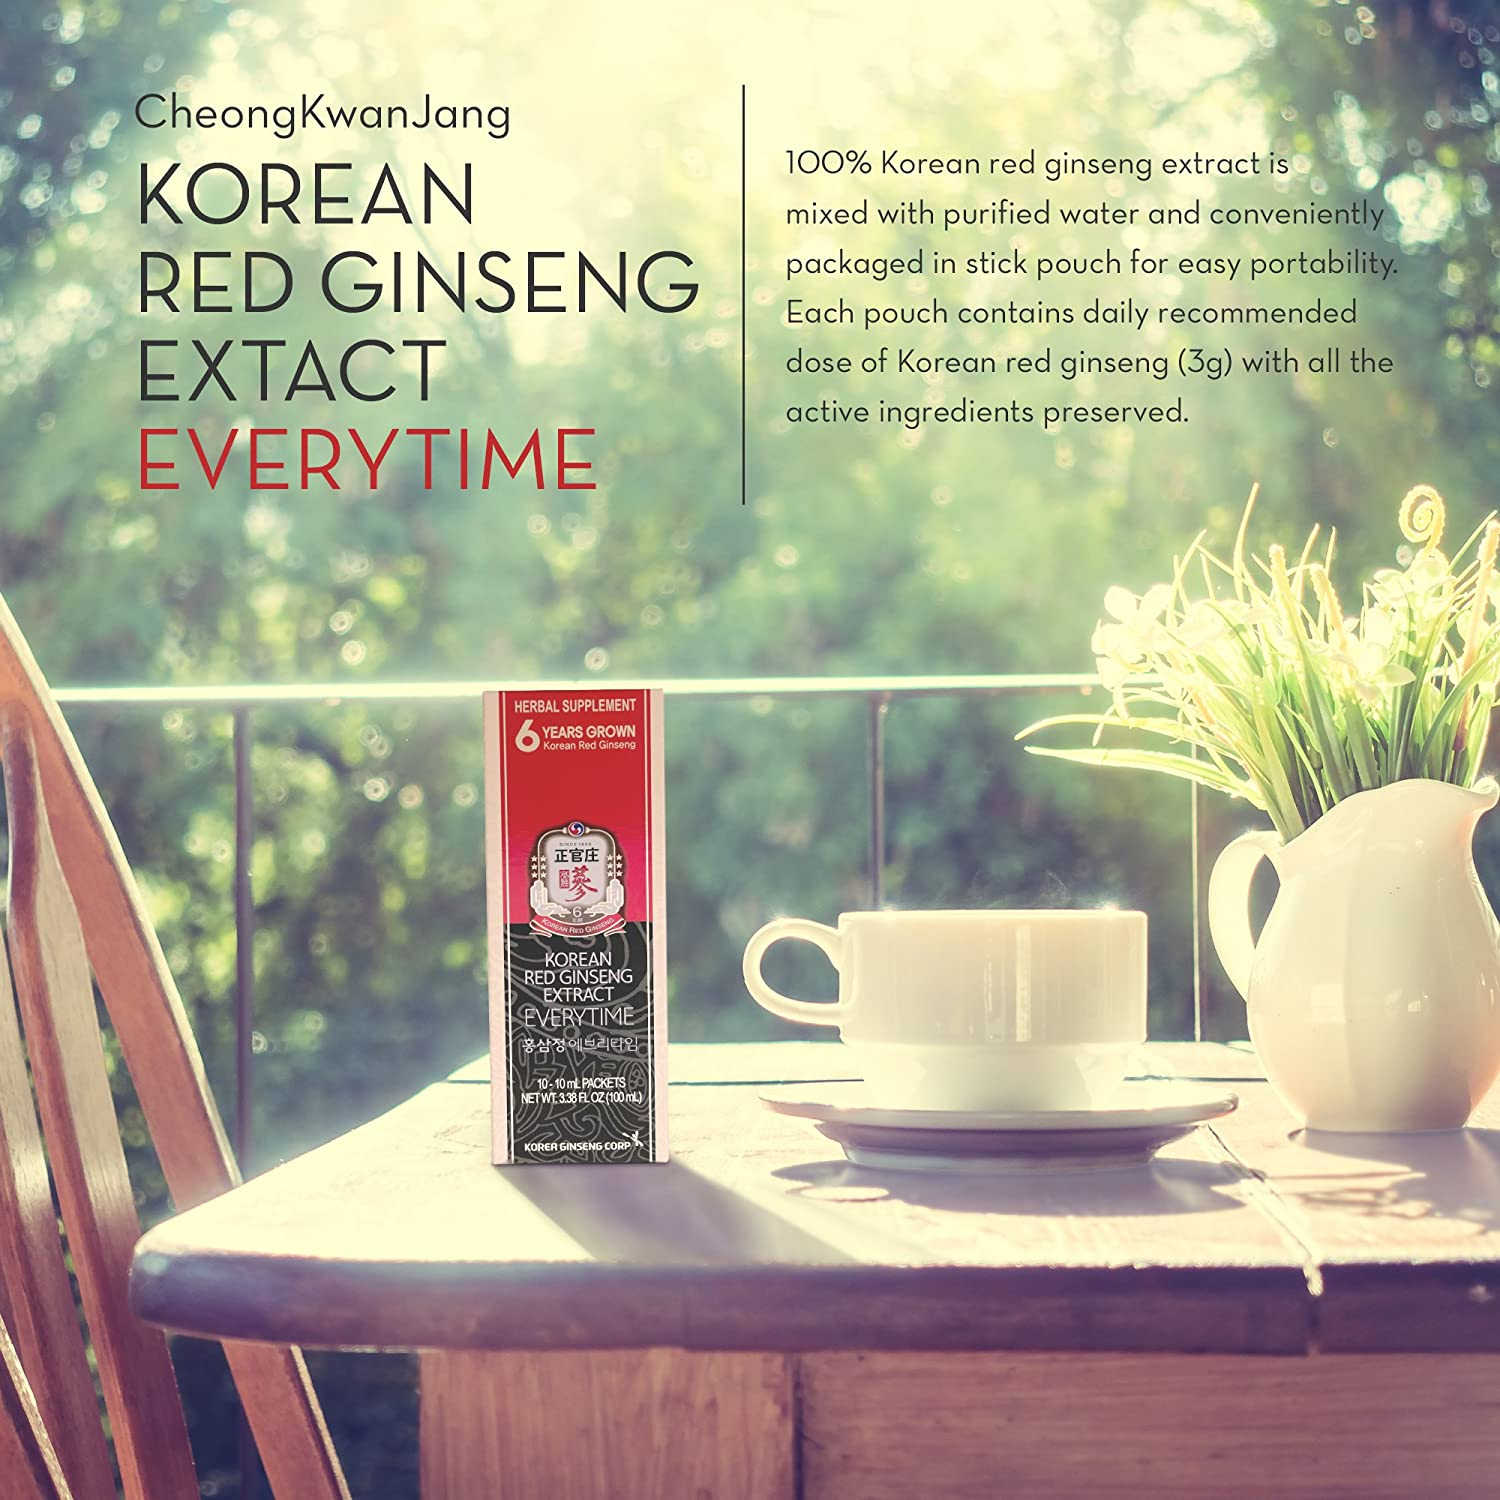 KGC Ginseng Everytime Extract, 10 Count